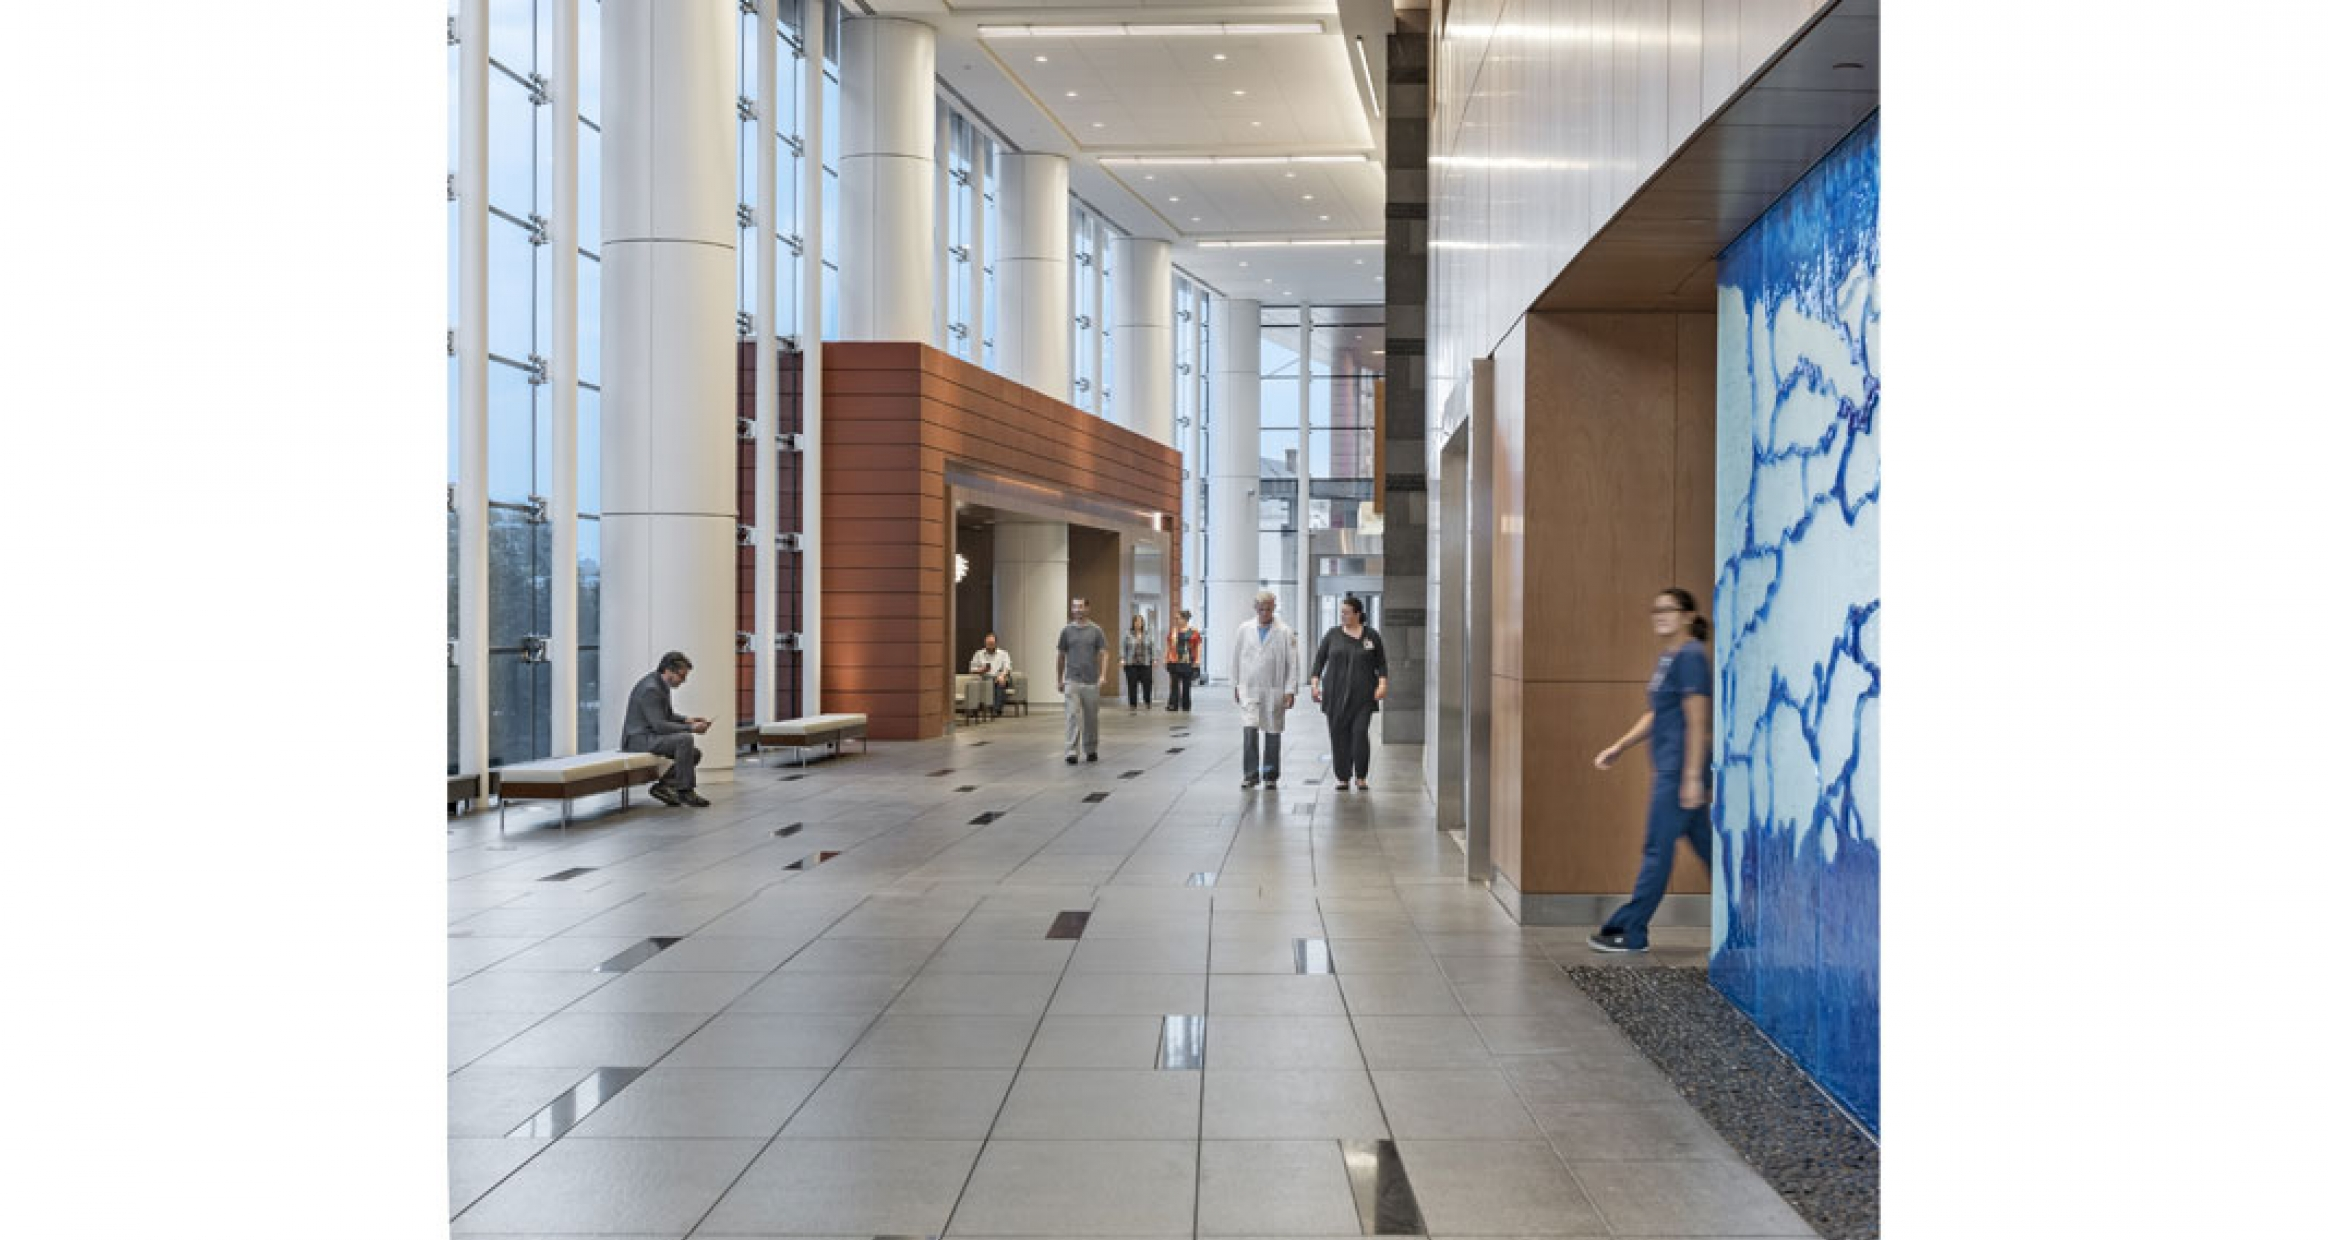 Connected to the main concourse, a non-denominational chapel features a glass art wall by Gordon Huether which serves as a positive distraction and a wayfinding element.